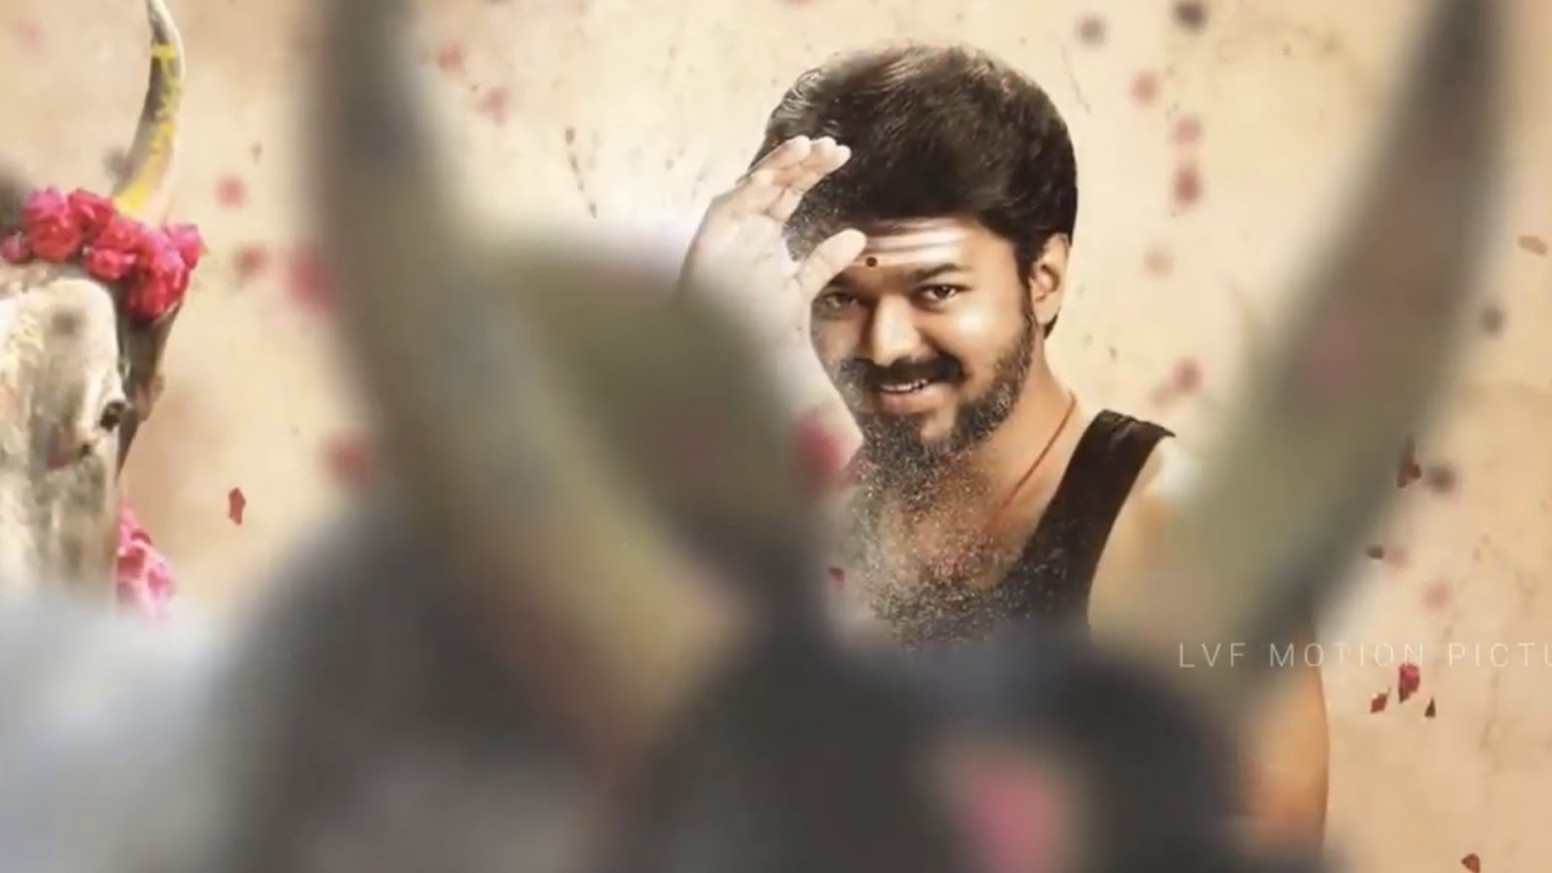 Mersal Movie Hd Wallpapers Download Free 1080p 1552x873 Download Hd Wallpaper Wallpapertip